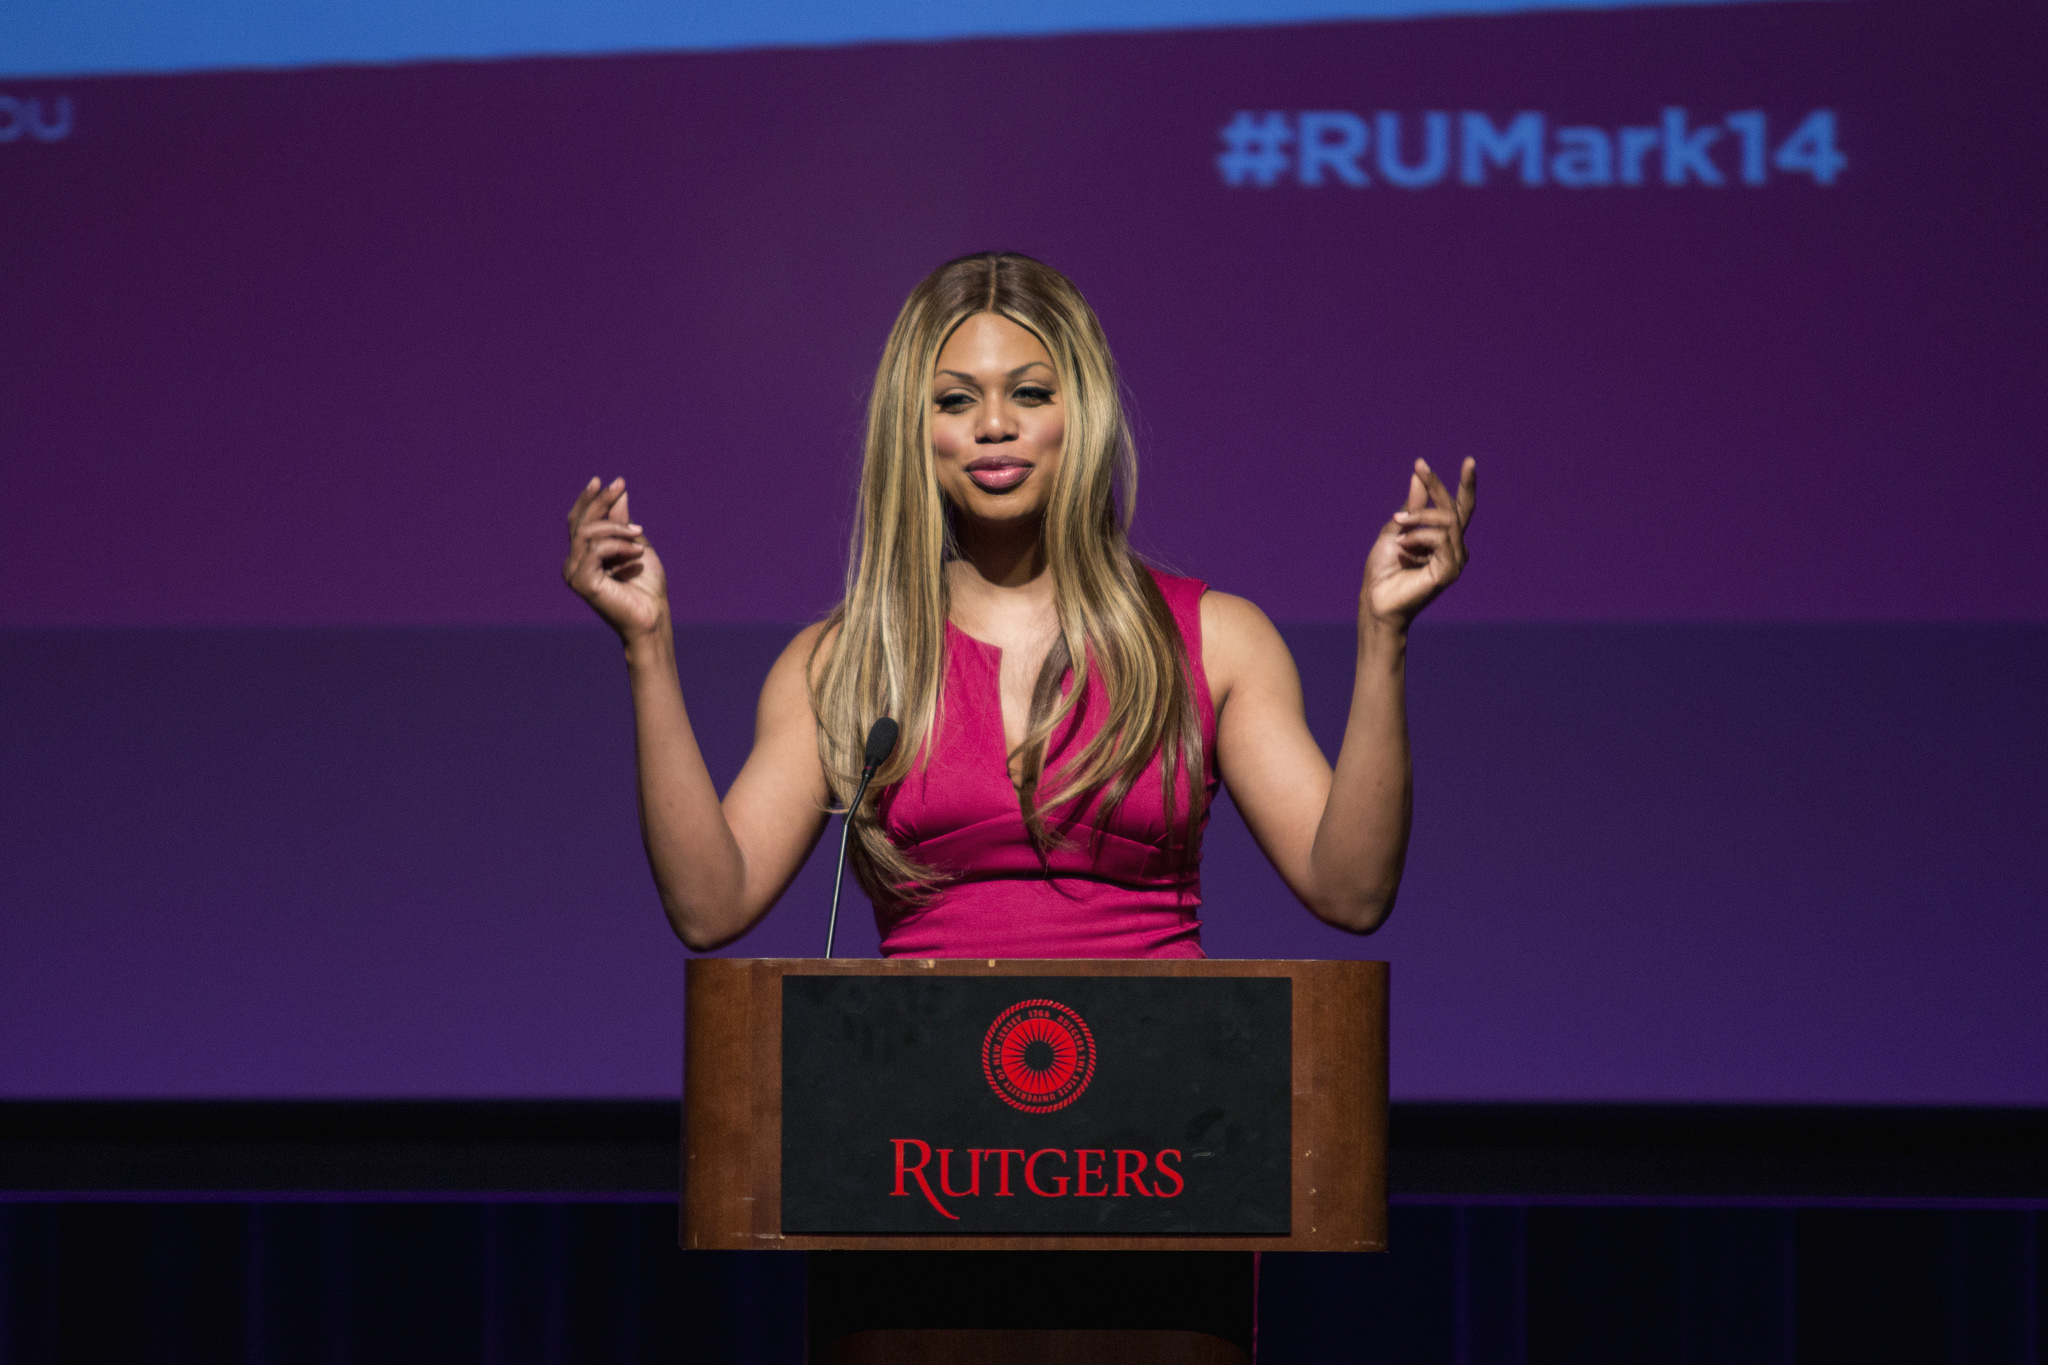 Orange is the New Black star and activist Laverne Cox also plays a transgender woman on the hit netflix series image: carolina cuartas